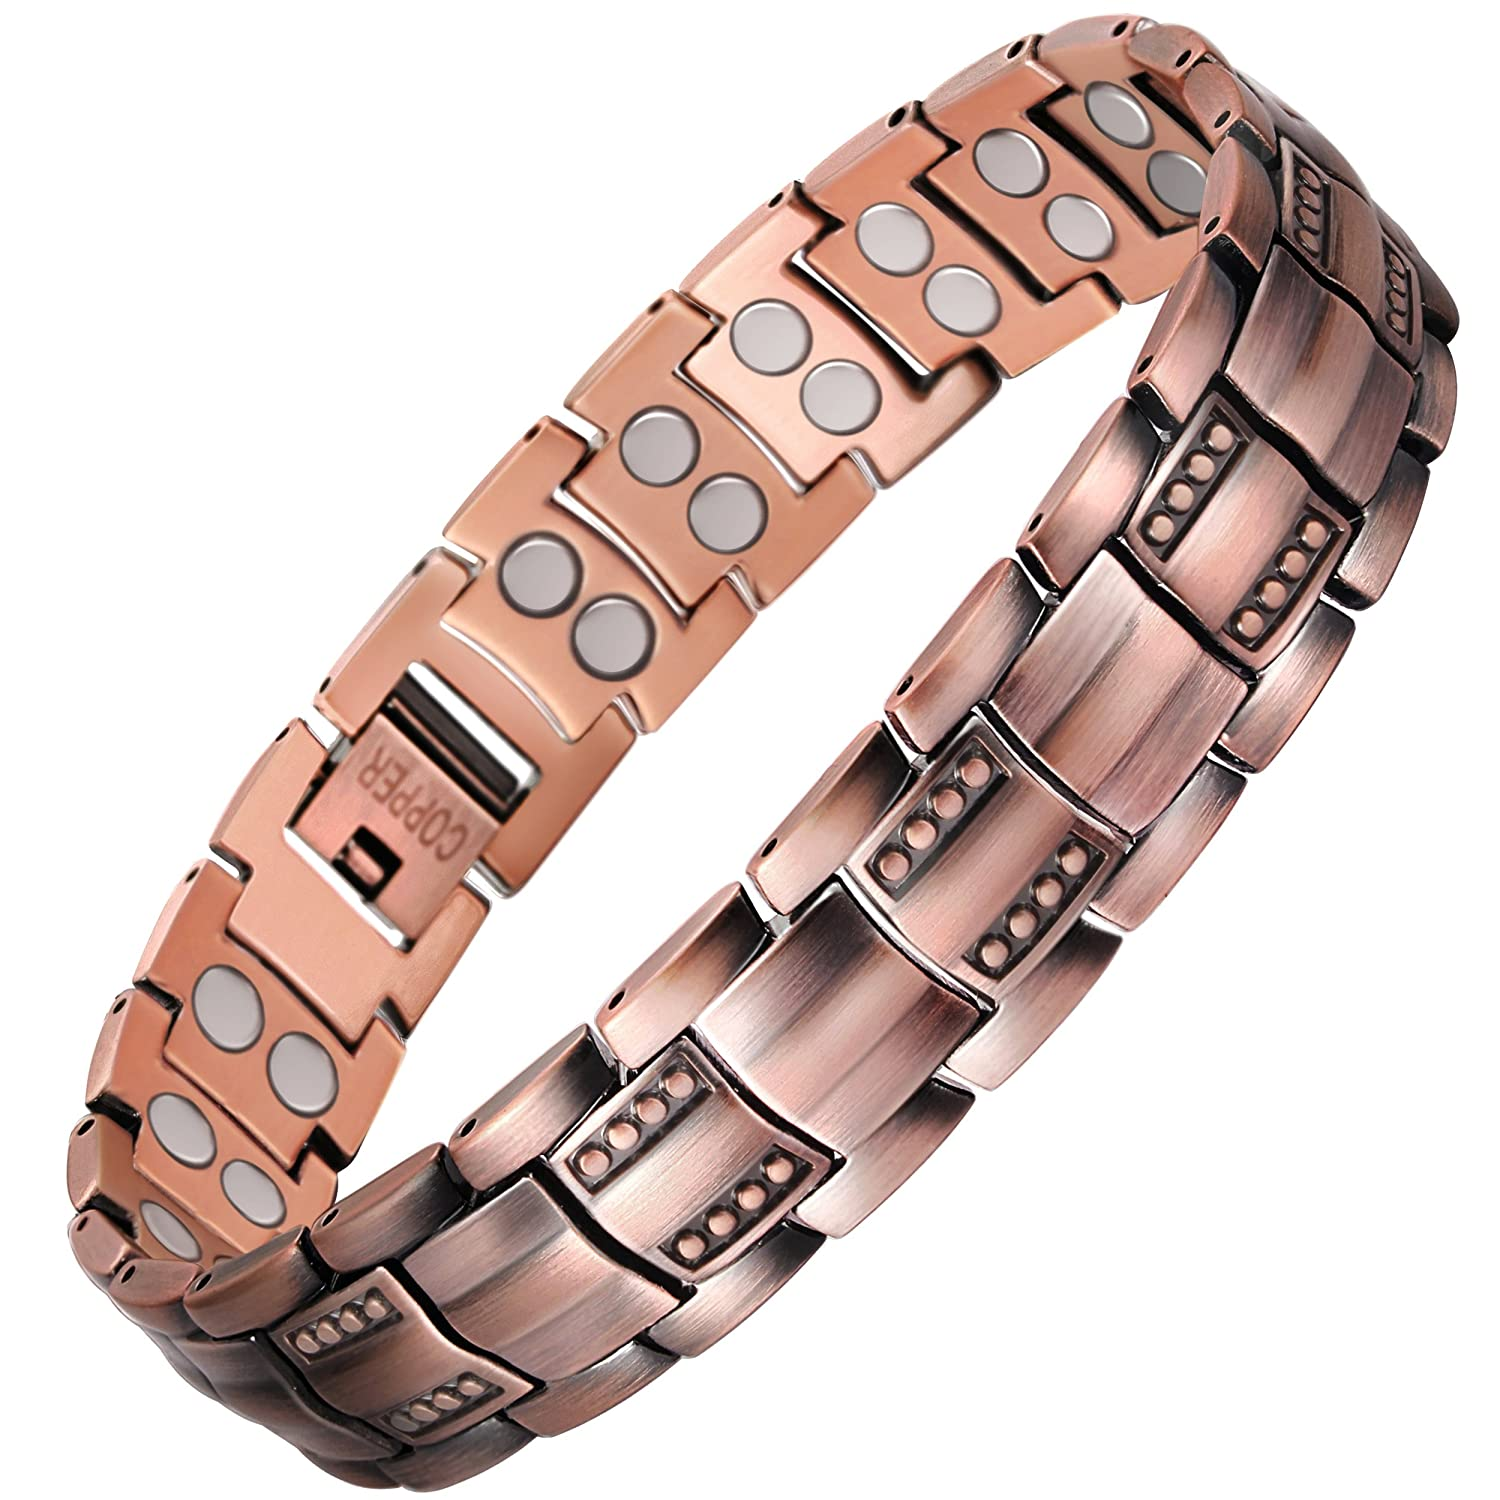 VITEROU Unisex Pure Copper Therapy Bracelet with Double Row Magnets Pain Relief for Arthritis, 3500 Gauss CATRCOR-080